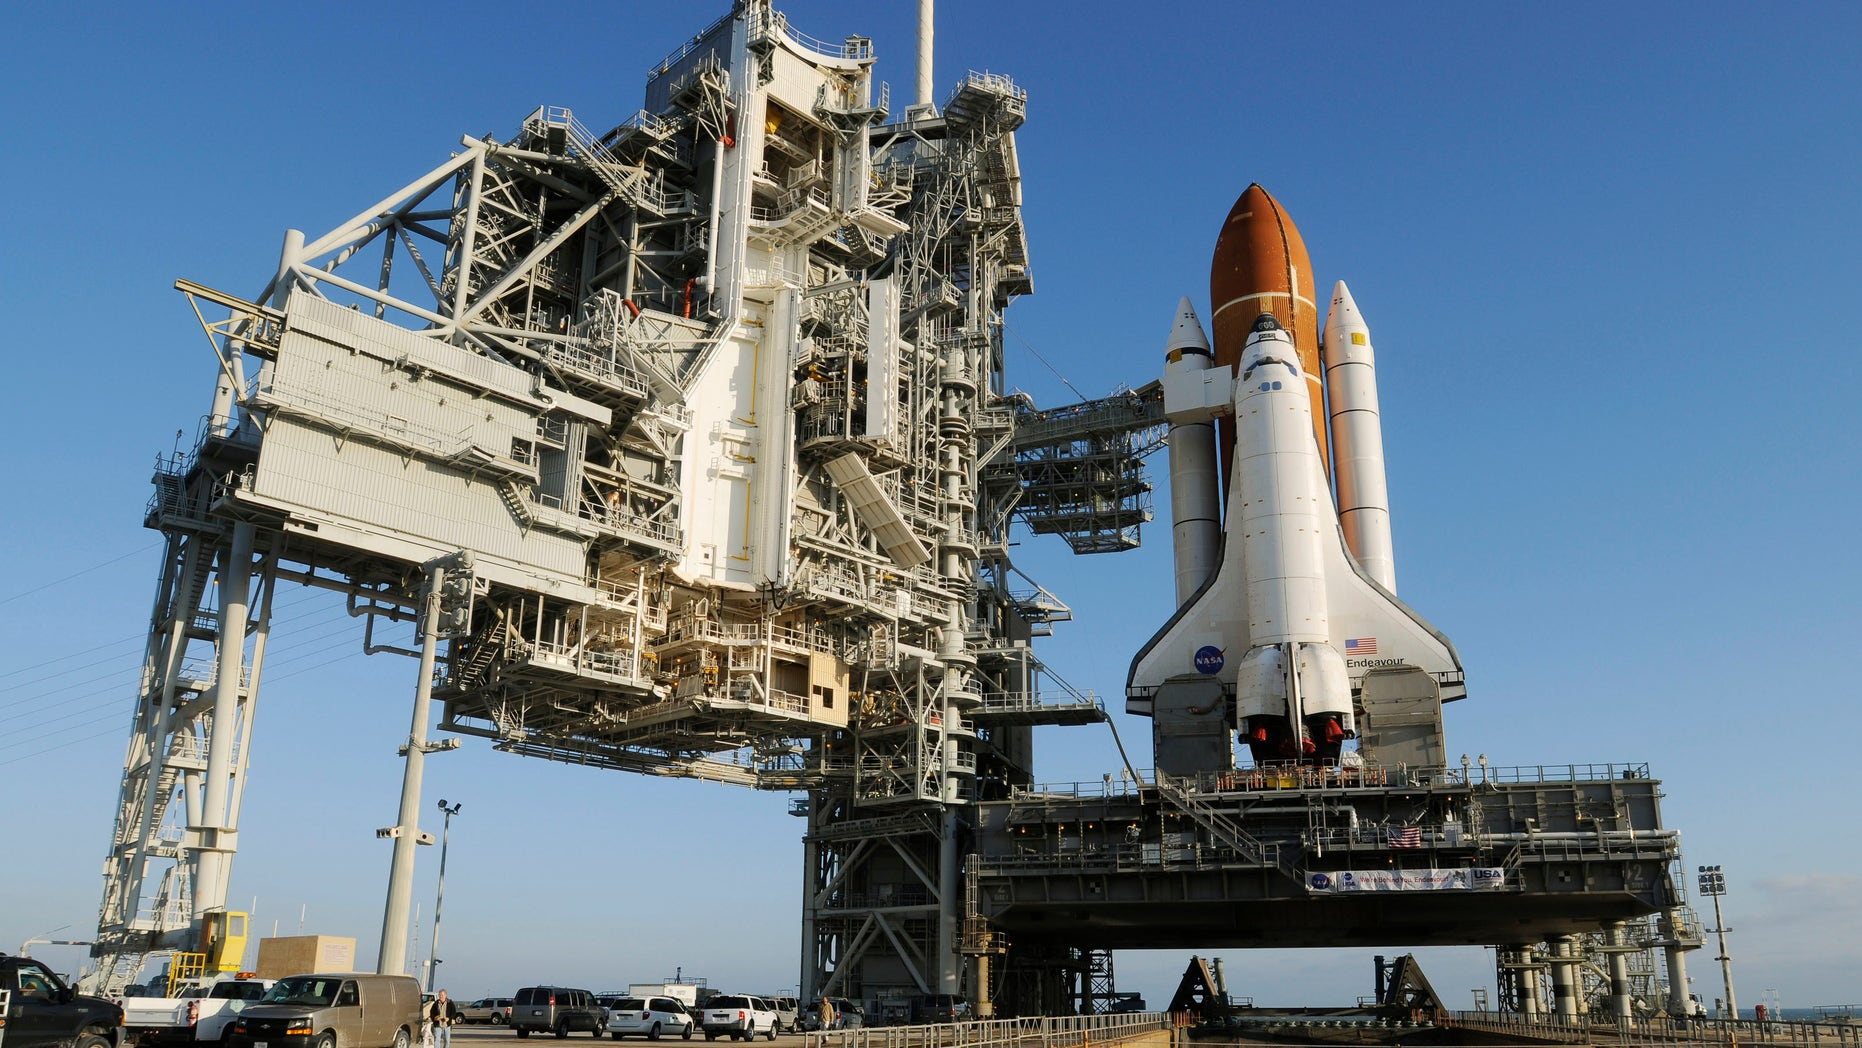 The space shuttle Endeavour sits on launch pad 39A on Friday, March 11, 2011. Endeavor is preparing for Mission STS-134 at the Kennedy Space Center which is scheduled for April 19, 2011. (AP Photo/Florida Today, Michael R. Brown) MAGS OUT